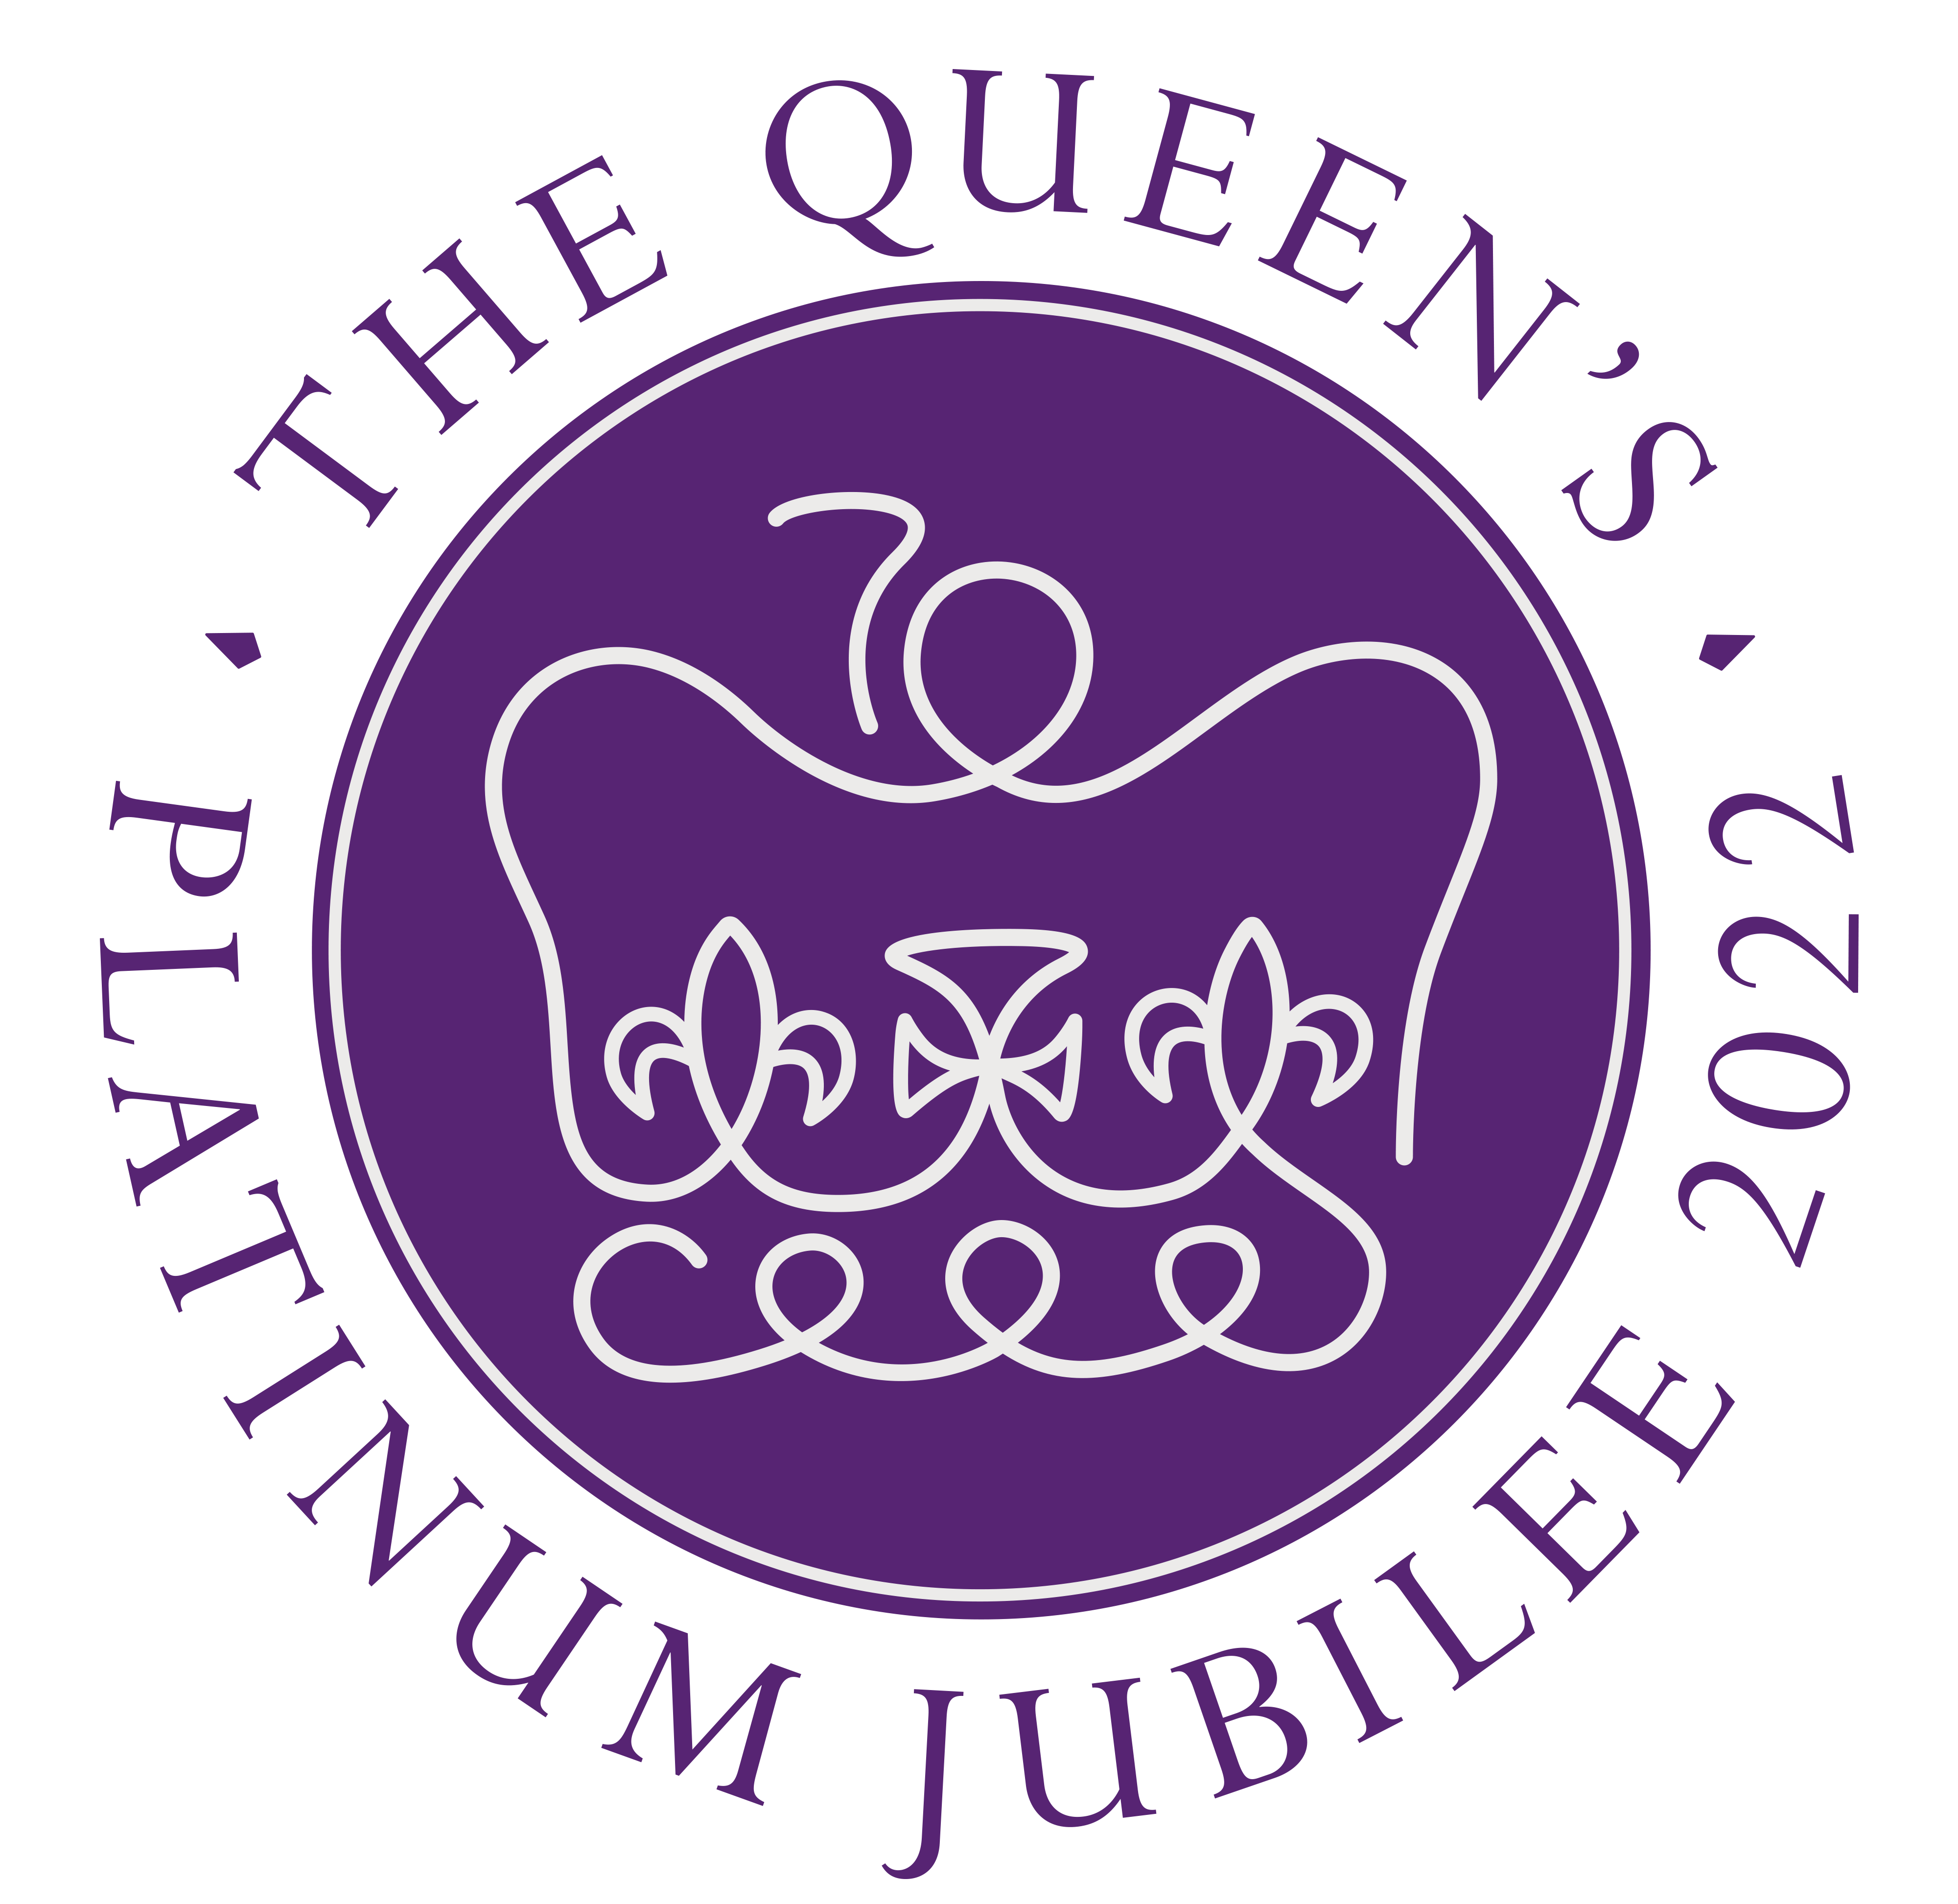 UK school children to receive a free 'patriotic' book from the government on the Queen's Platinum Jubilee